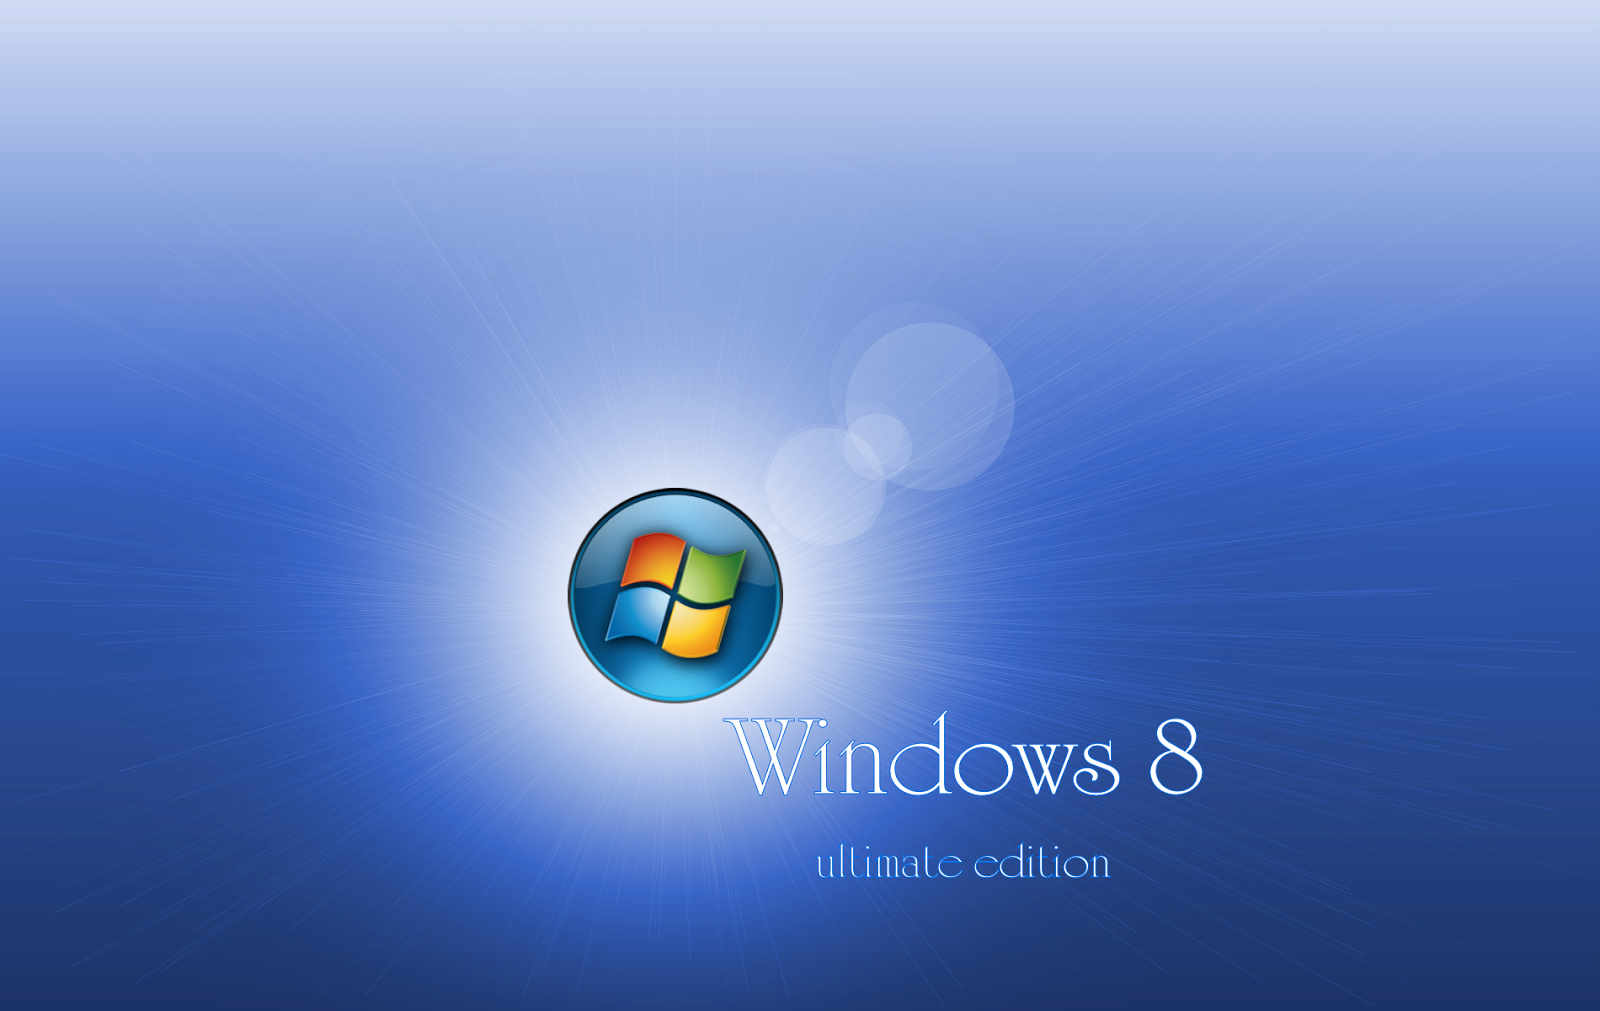 NEW Kumpulan Wallpaper Windows 8 Gratis Terbaru 2014 ENetter